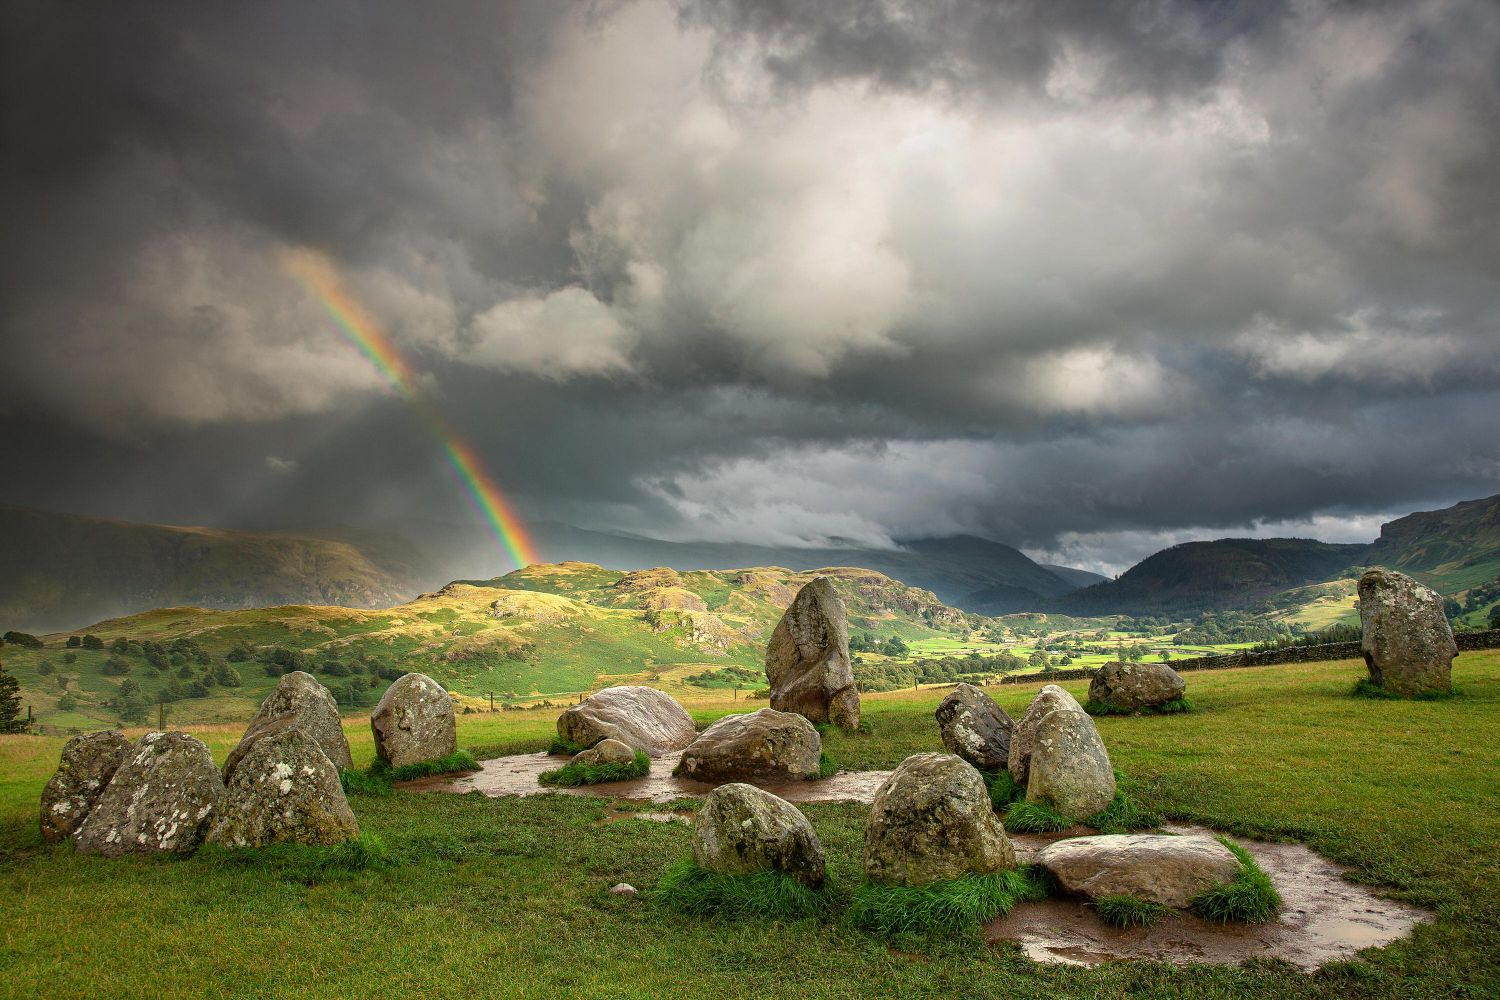 Rainbow over the Castlerigg Stone Circle